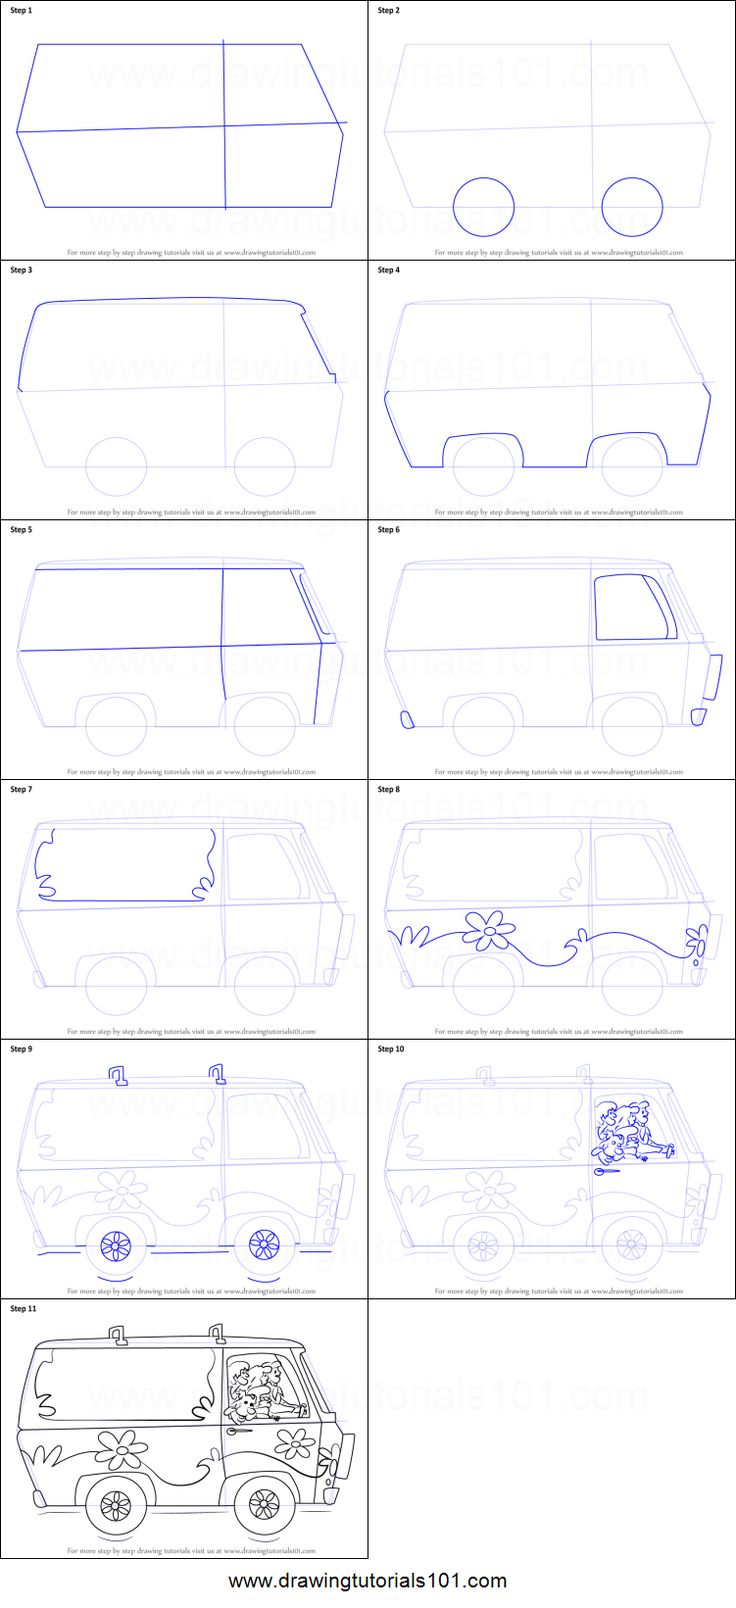 How To Draw The Mystery Machine From Scooby Doo Step By Step Printable Drawing Sheet To Print L Scooby Doo Scooby Doo Mystery Incorporated Scooby Doo Costumes